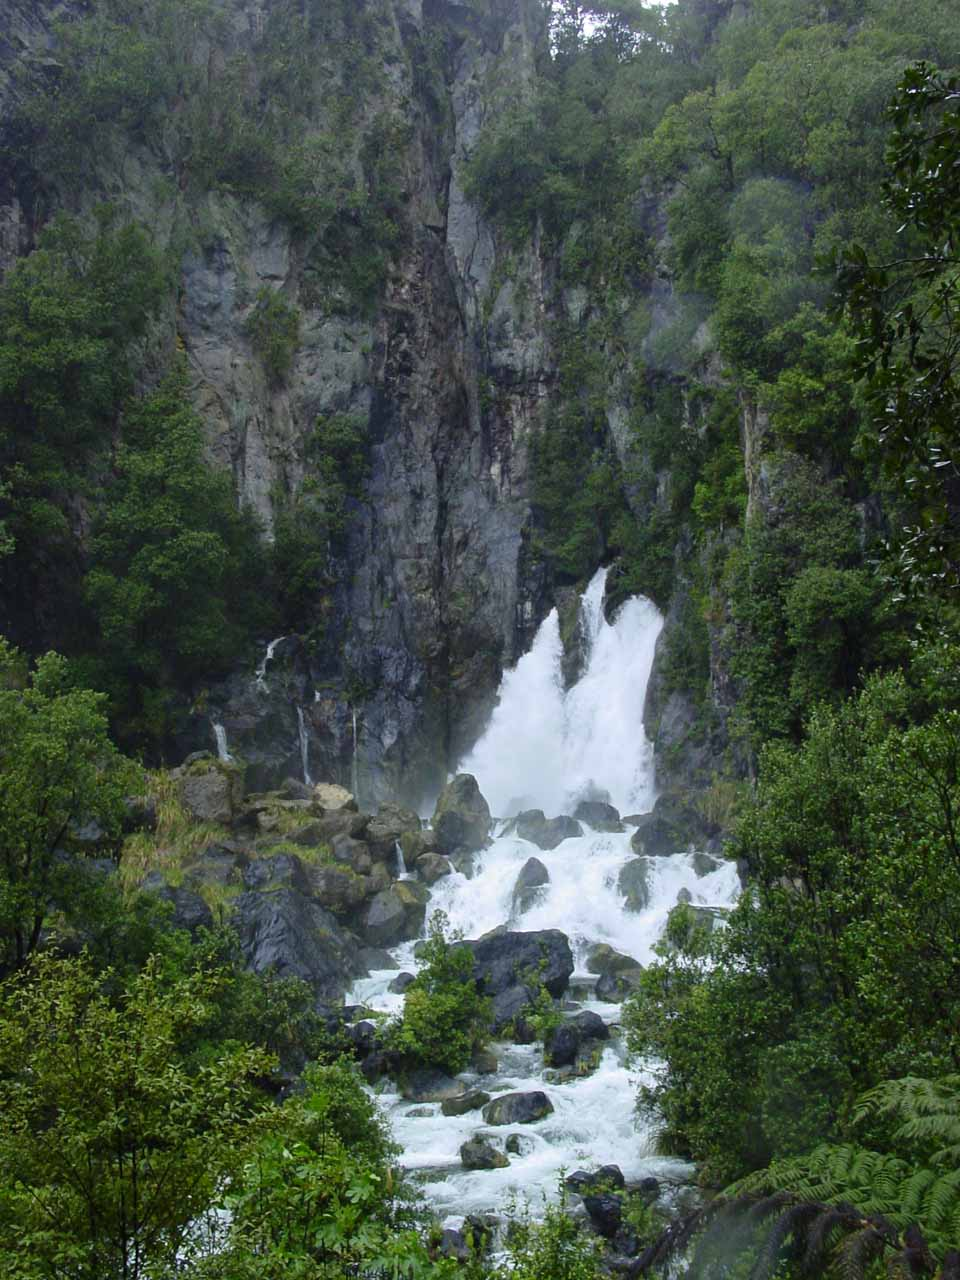 Checking out the context of Tarawera Falls and its surrounding cliffs